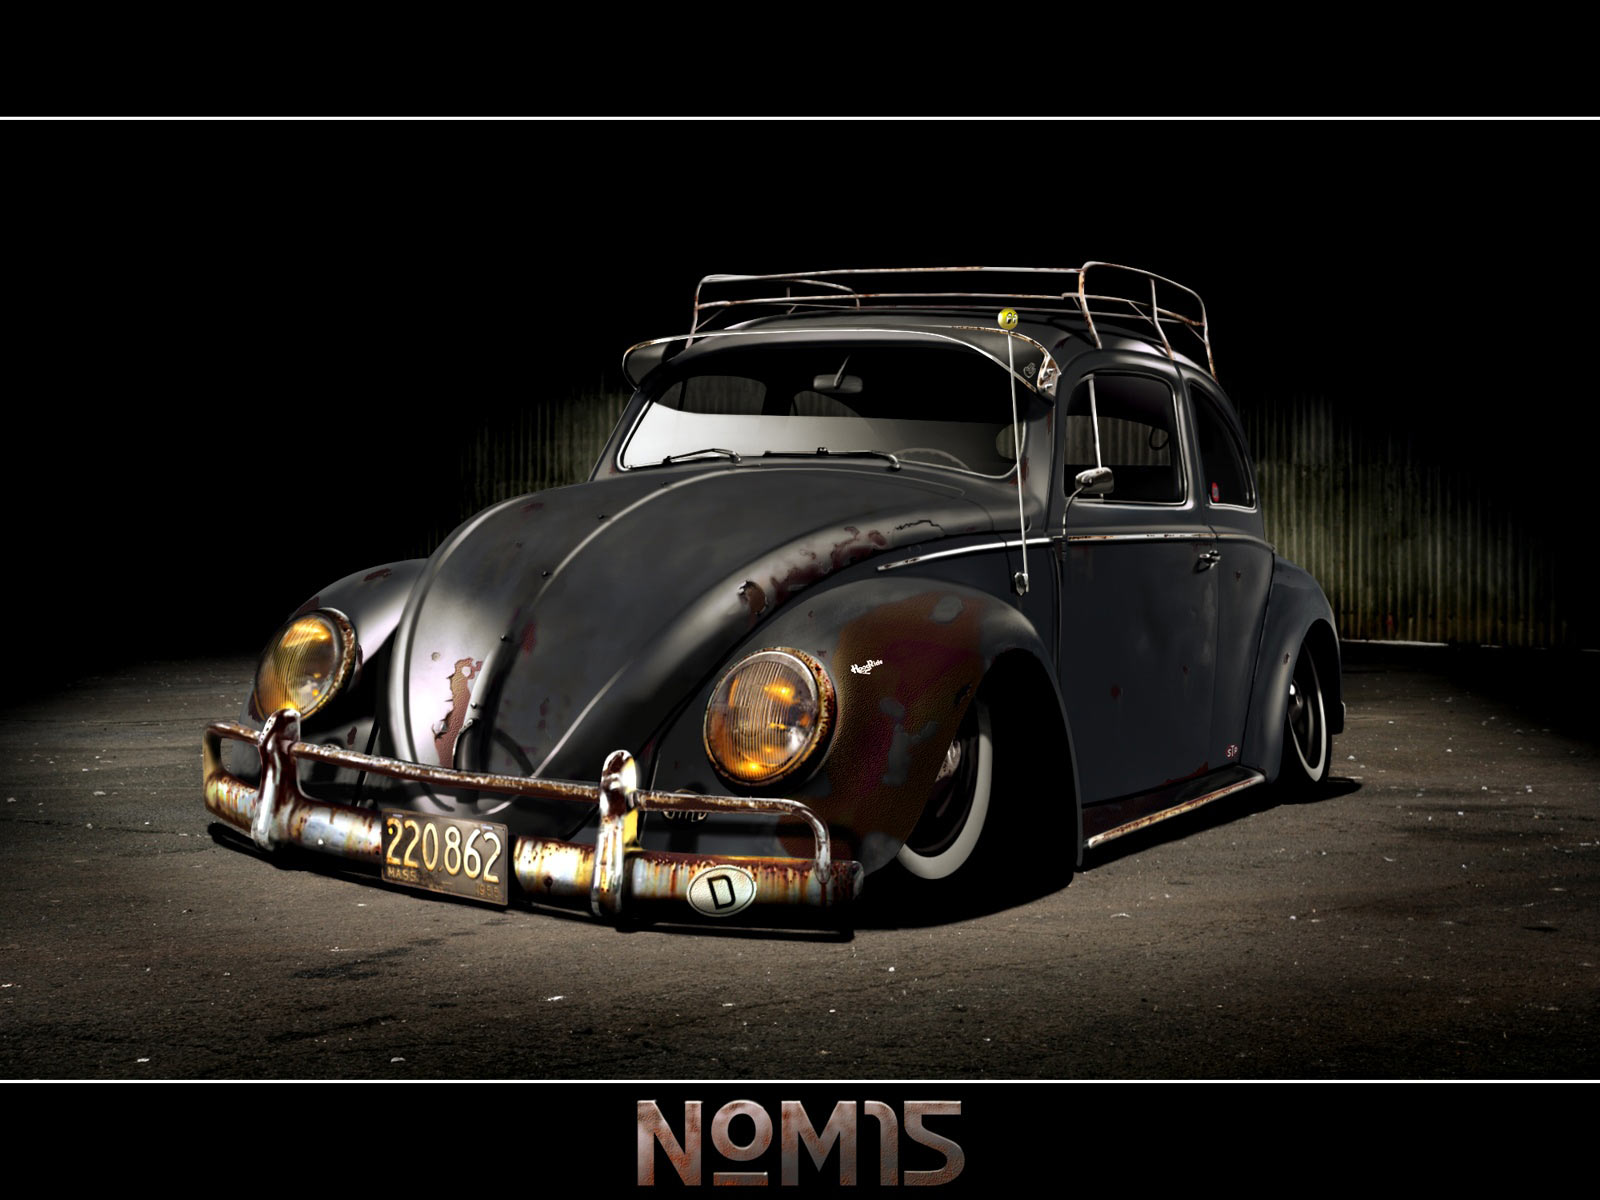 cool cars wallpapers for desktop cool cars pictures for desktop cool 1600x1200